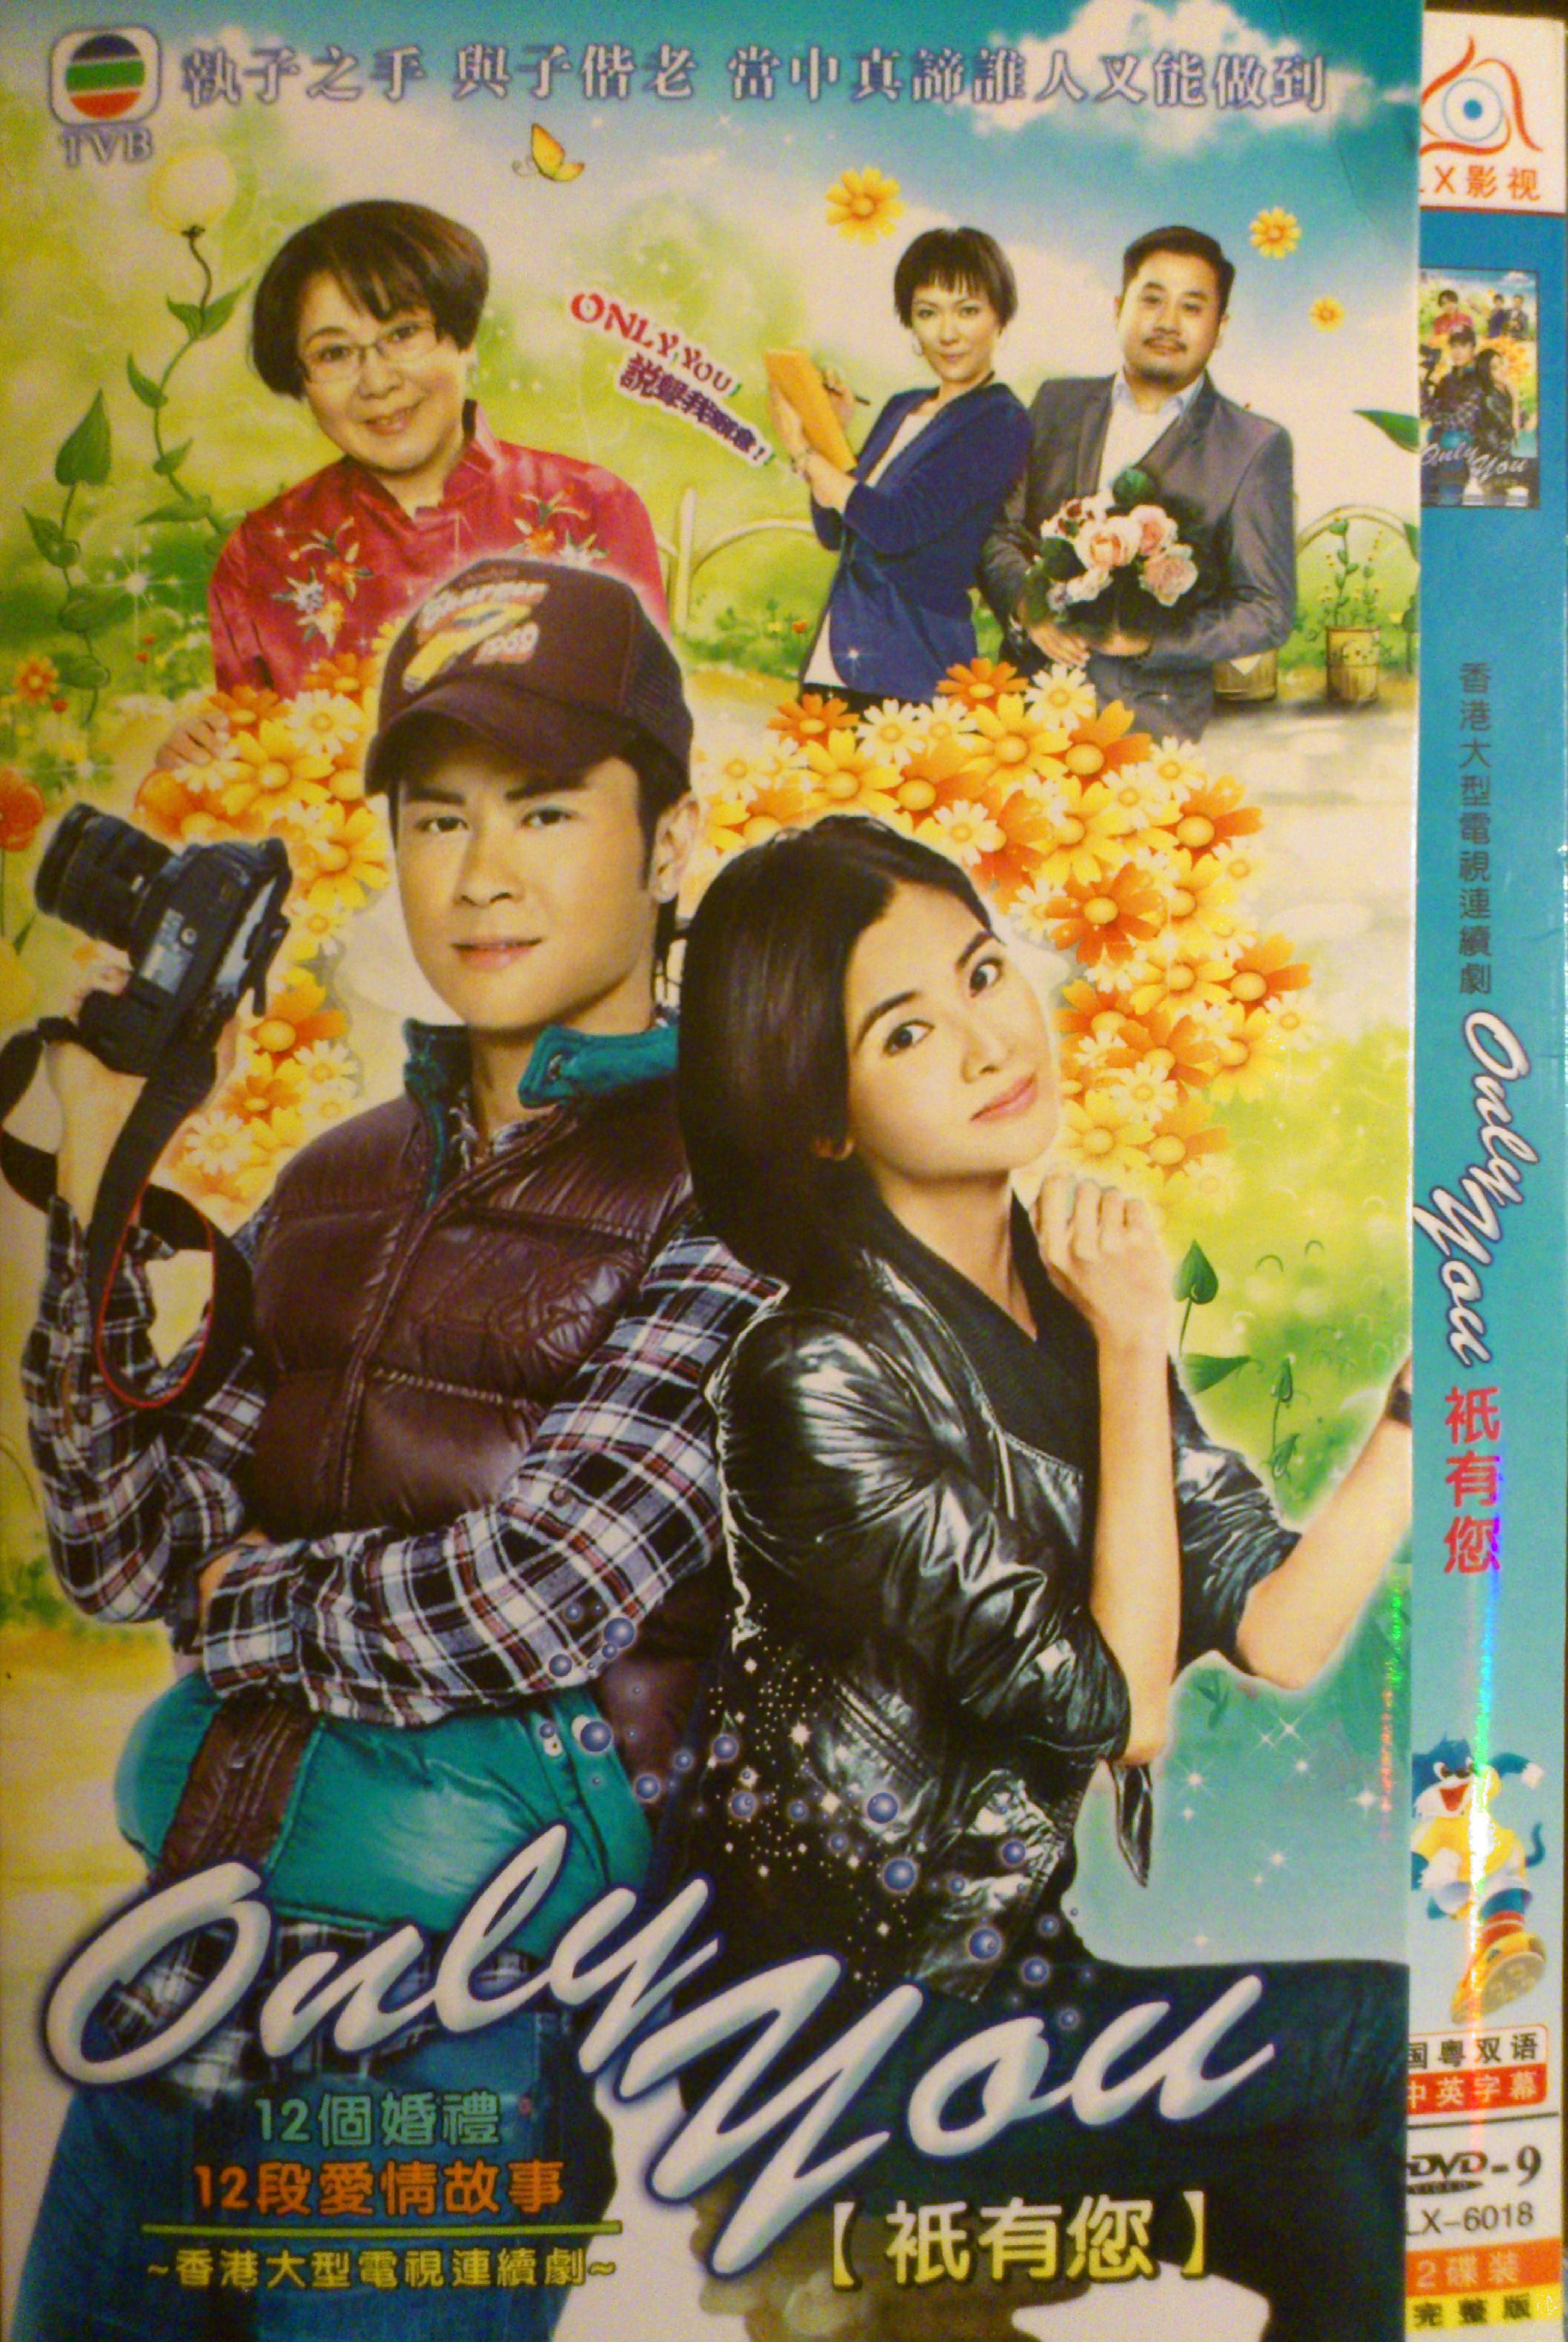 List of TVB dramas in